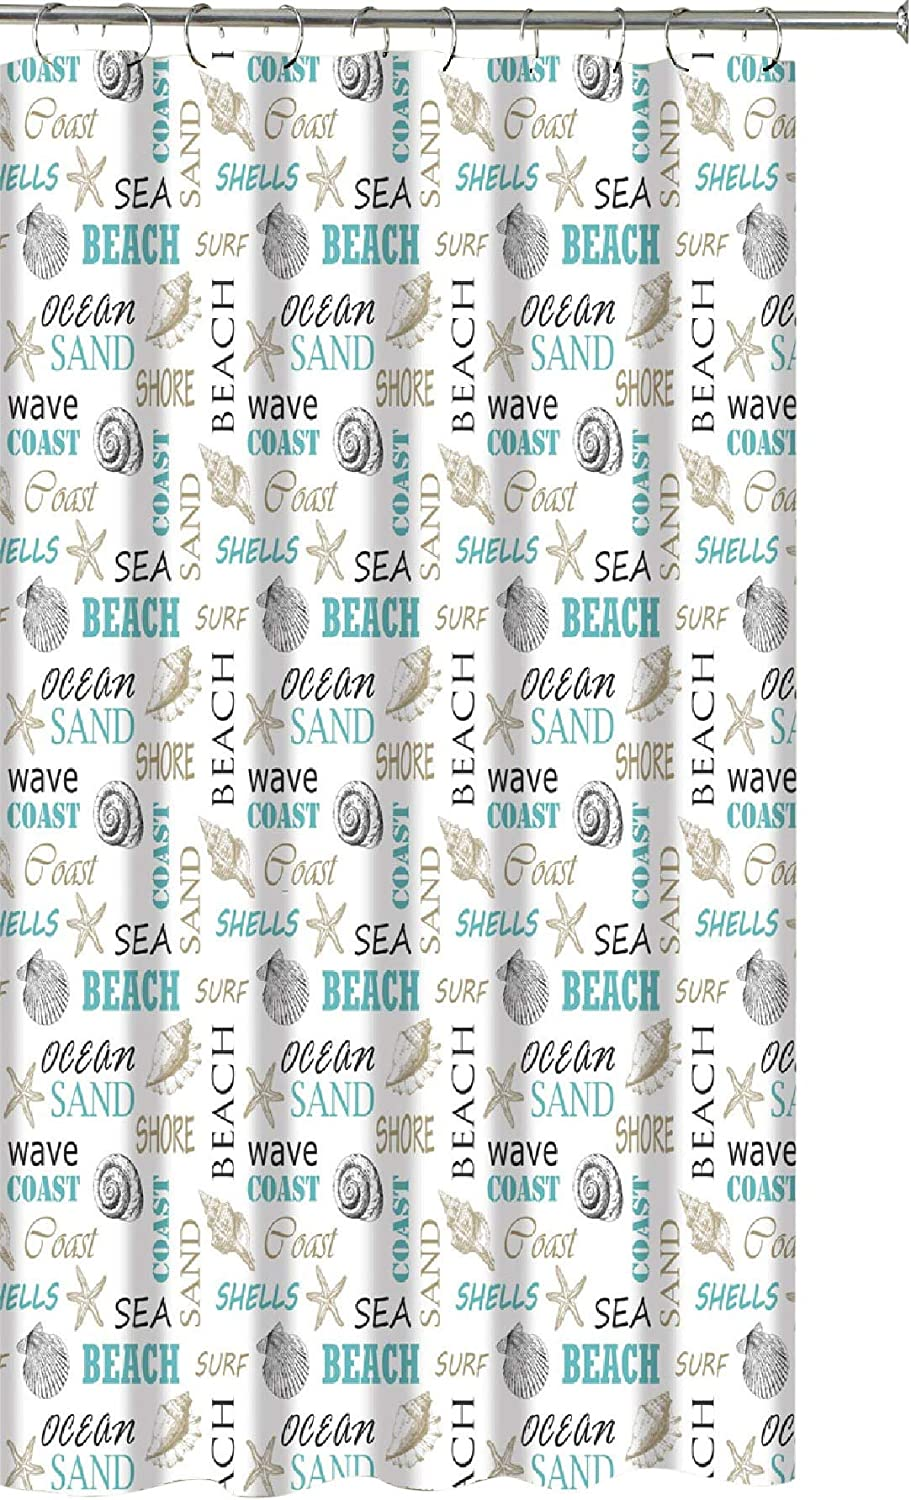 Tribeca Bath Collection Ocean Shells Theme Fabric Shower Curtain: Modern Decorative Typography and Pictorial Design